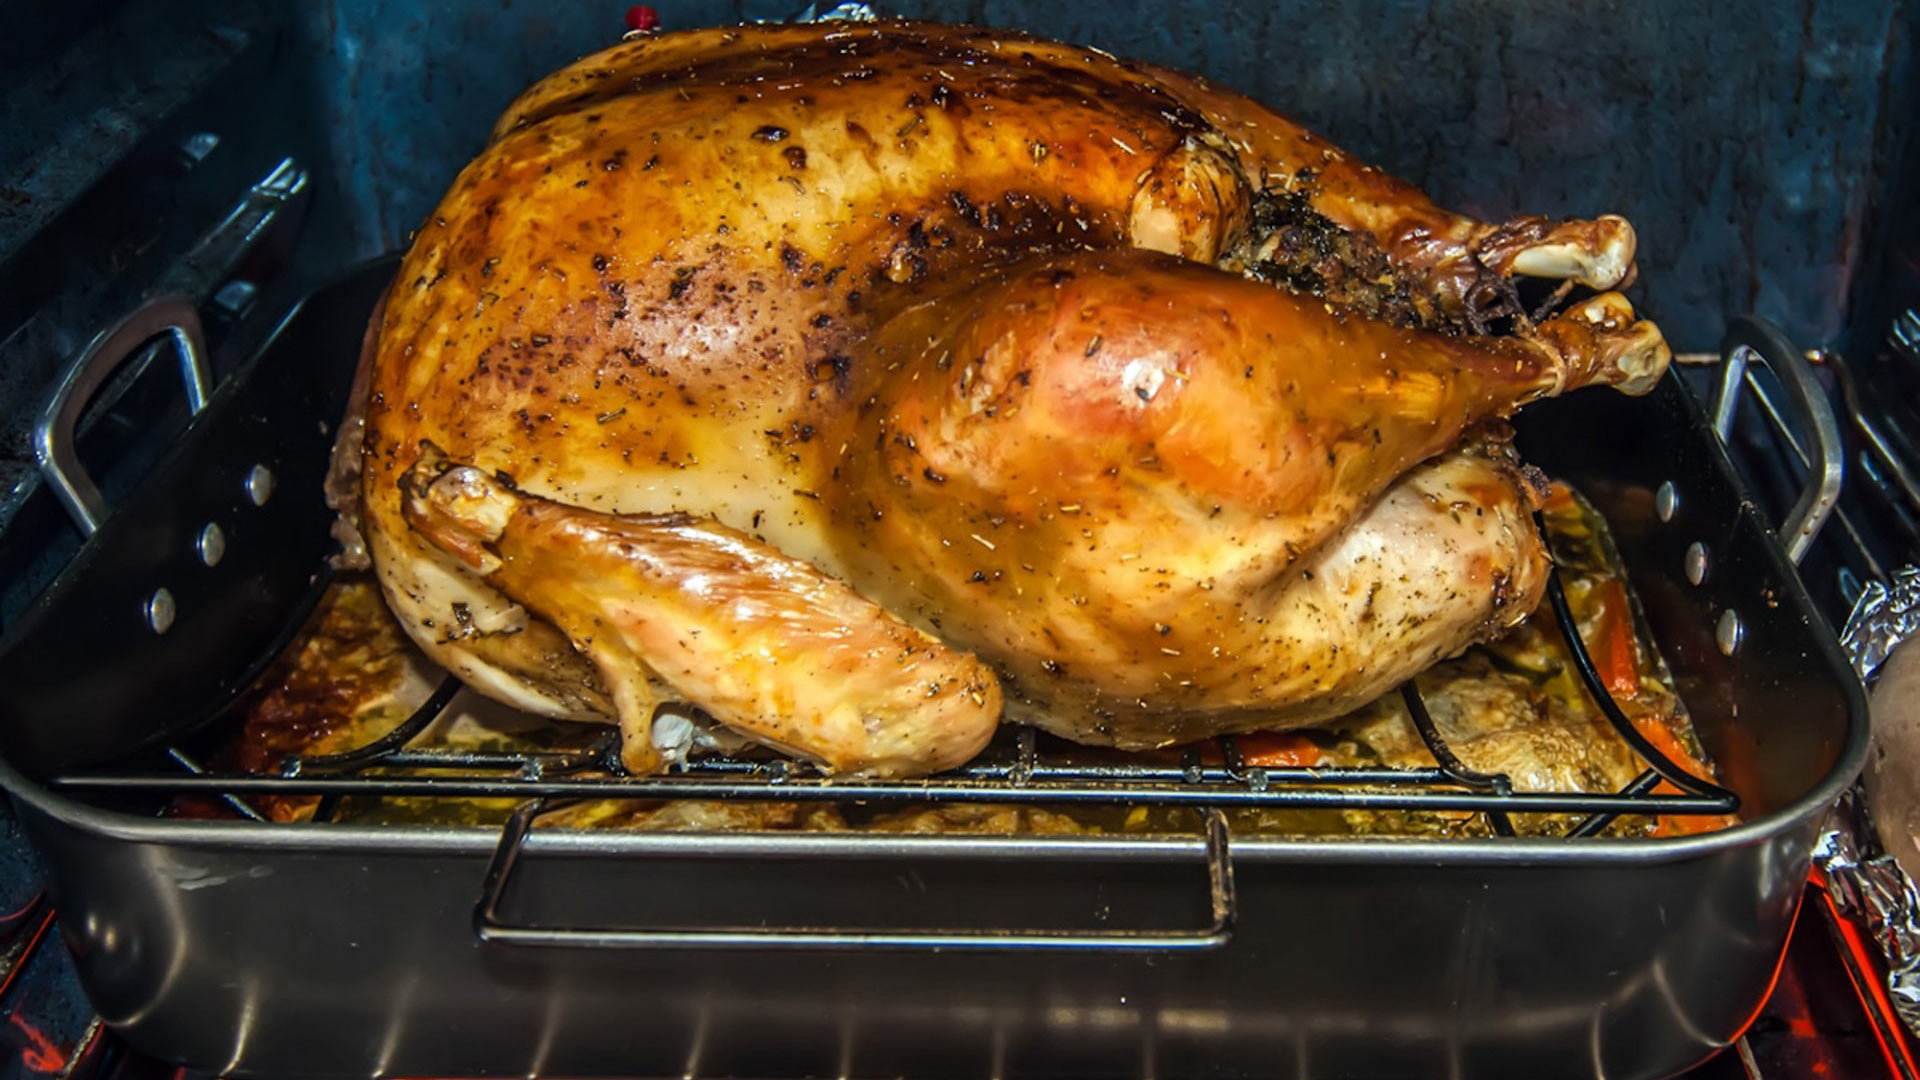 A roasting Thanksgiving Turkey.